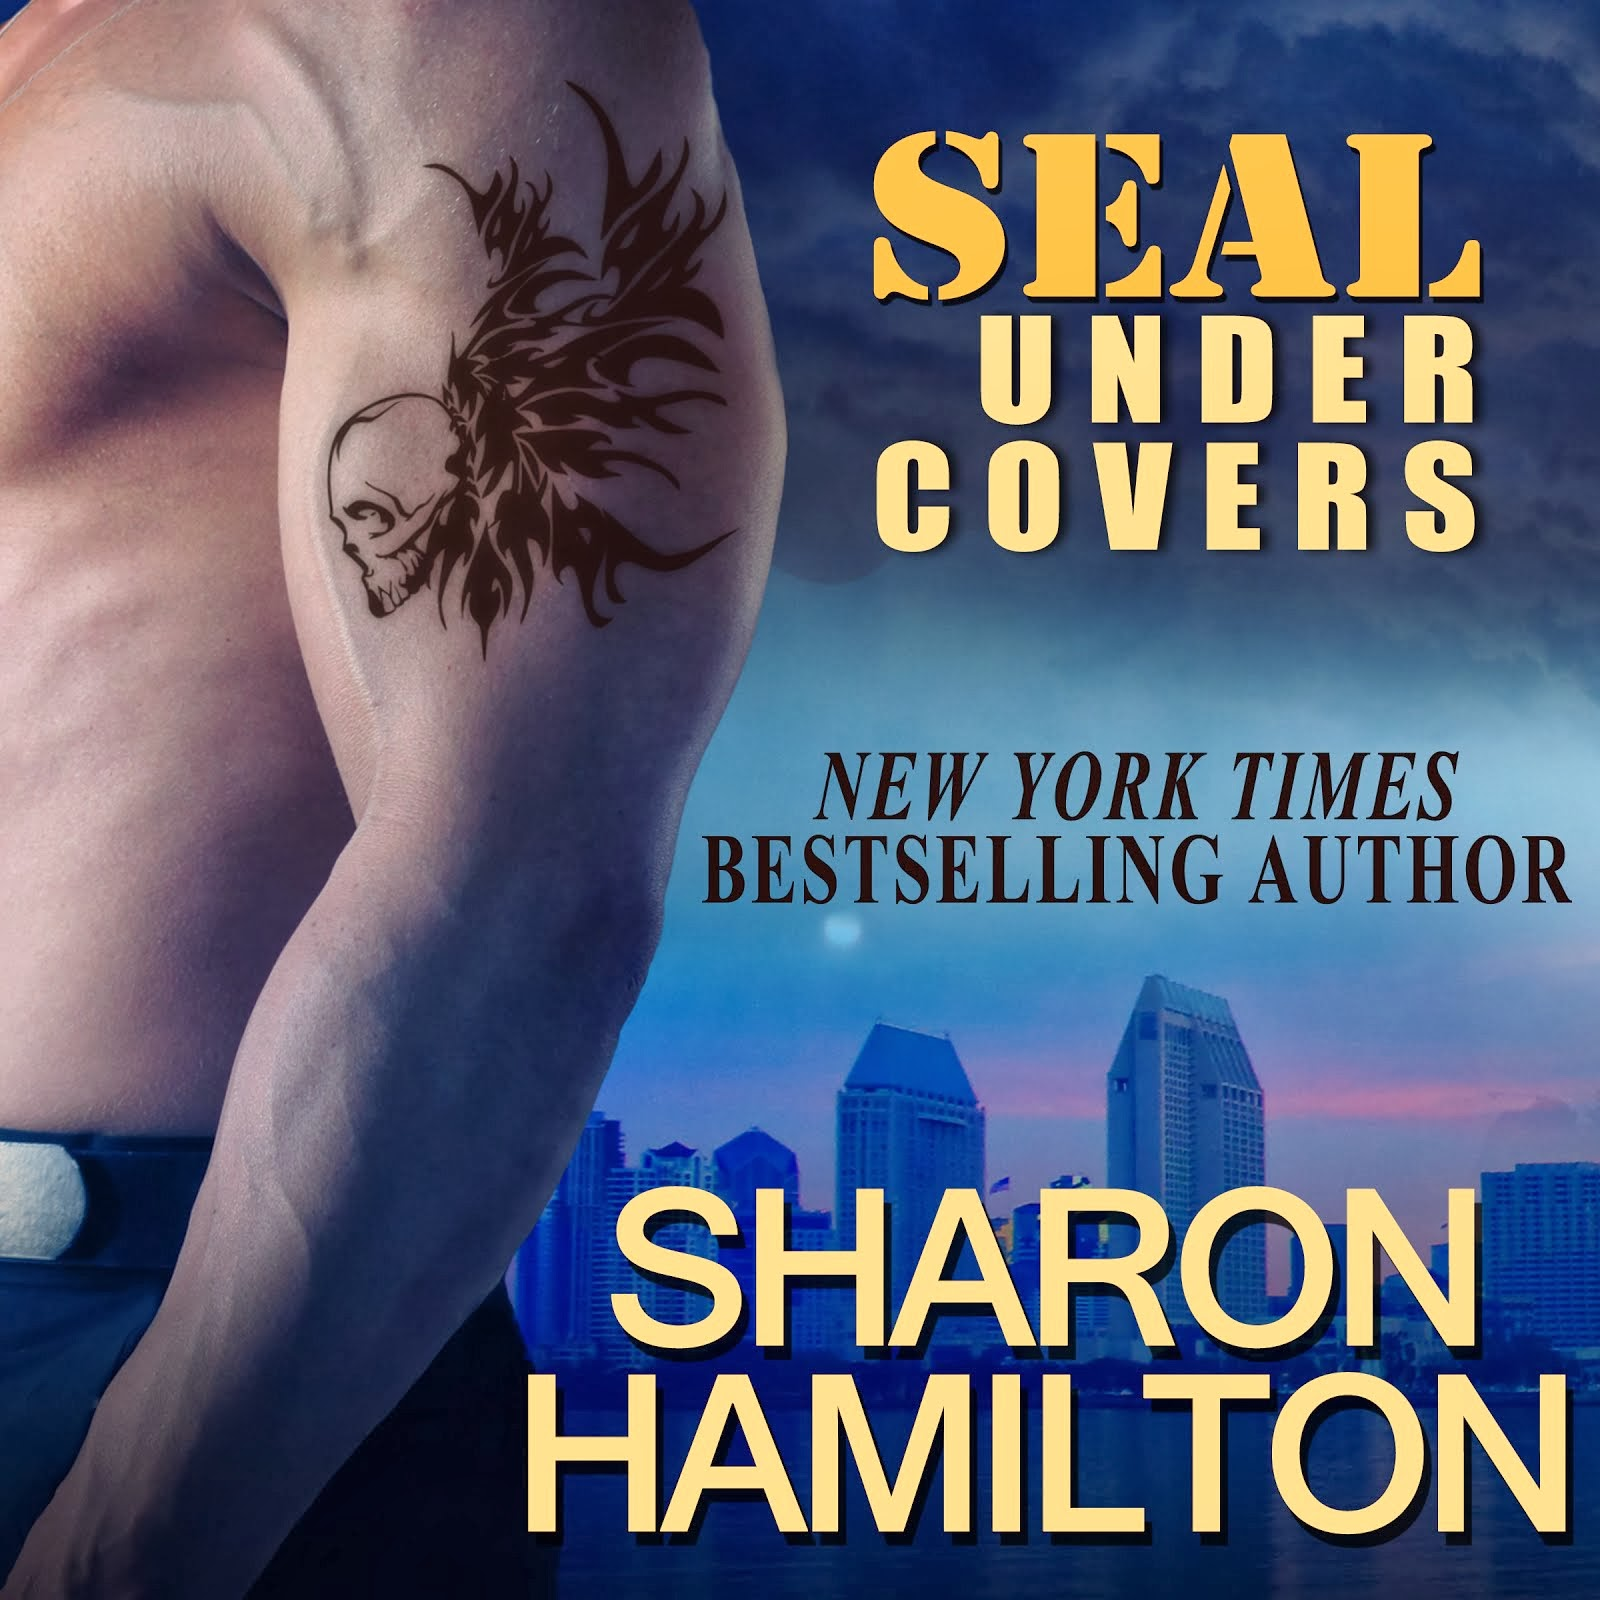 SEAL Under Covers out in Audio!